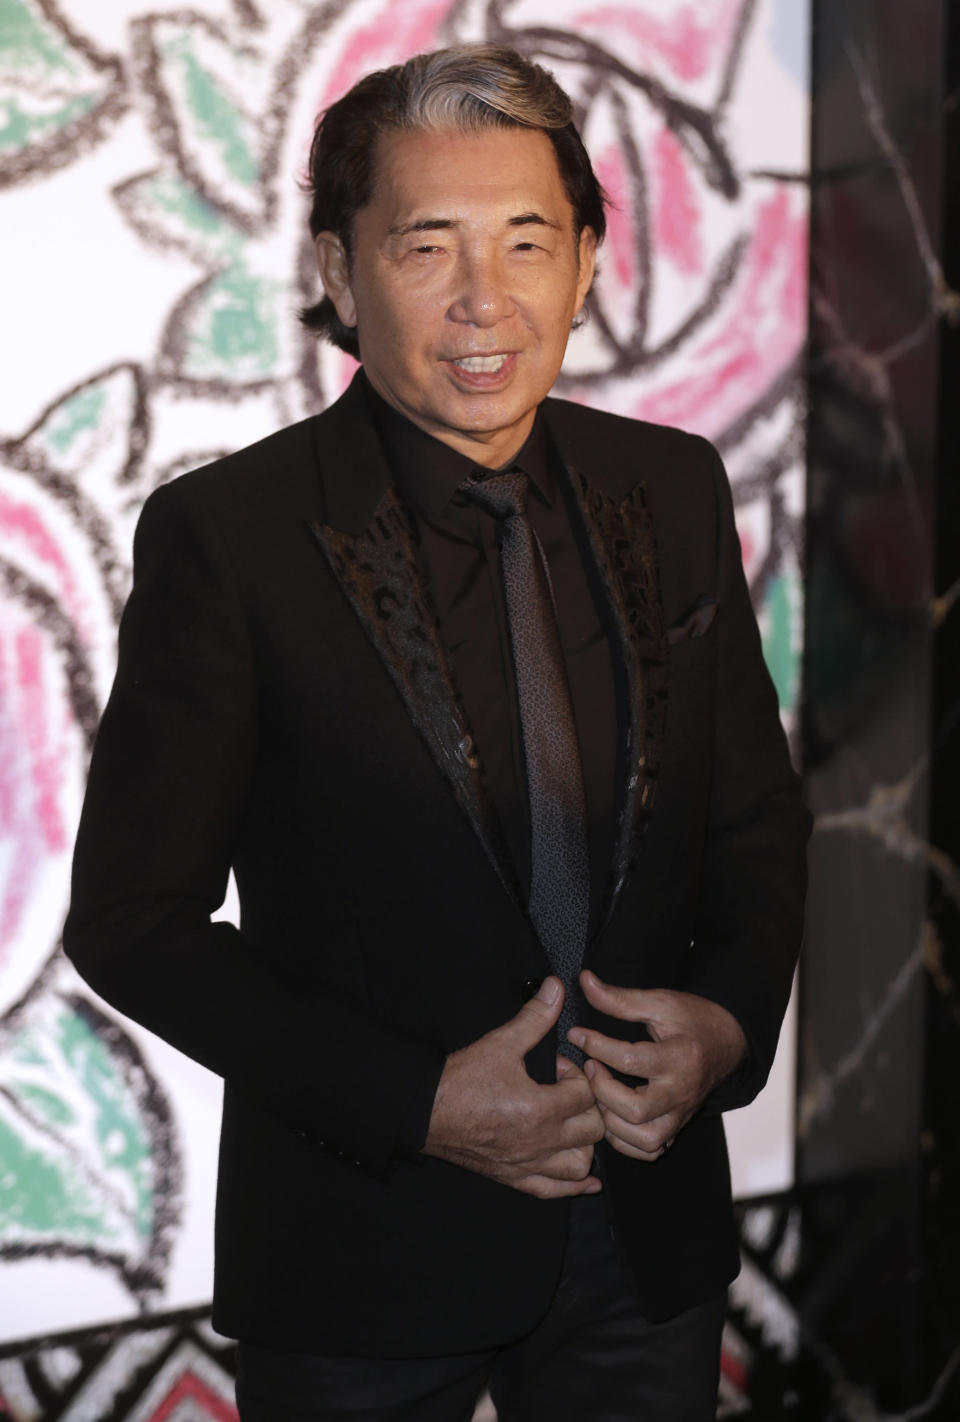 FILE - In this Saturday, March 28, 2015 file photo, Japanese fashion designer Takada Kenzo poses for photographers as he arrives at the Rose Ball in Monaco. Fashion designer Kenzo Takada dies from COVID-19 complications at age 81 near Paris, spokeswoman and reports said Sunday Oct. 4, 2020. (AP Photo/Lionel Cironneau, file)